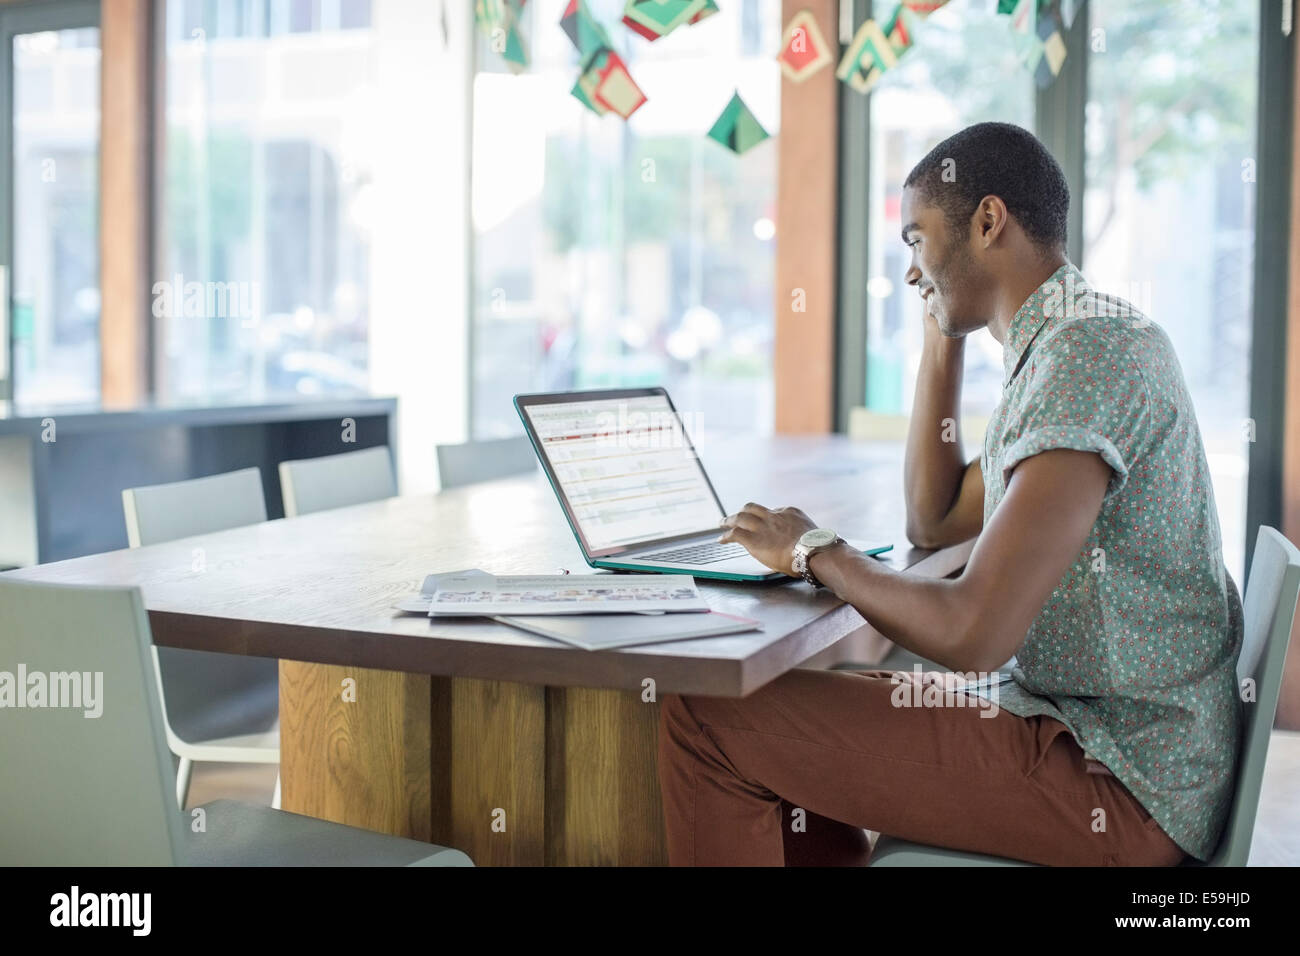 Man working on laptop in office Photo Stock